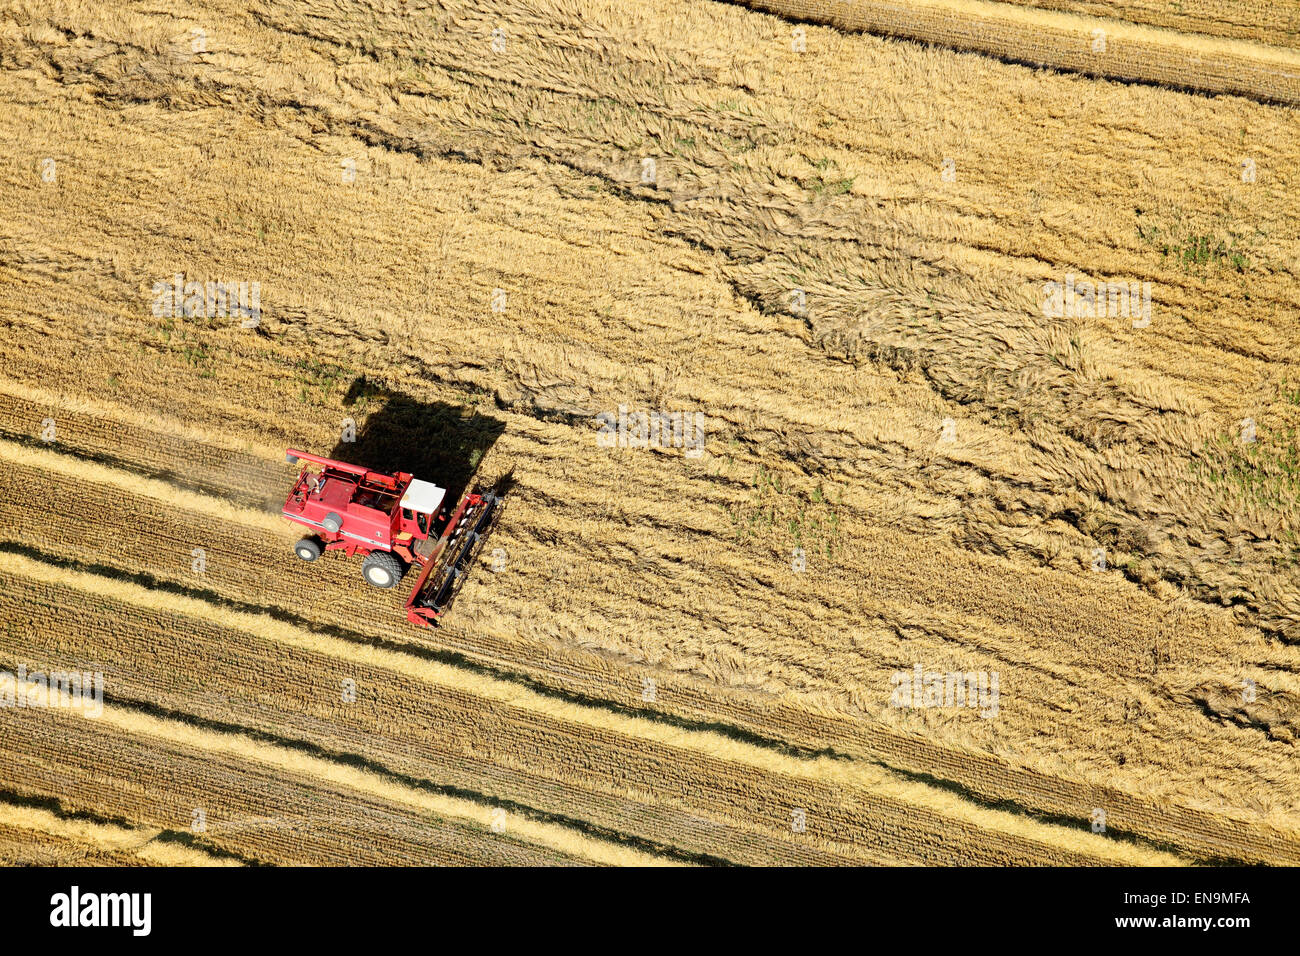 An aerial view of farm machinery in the field harvesting wheat - Stock Image